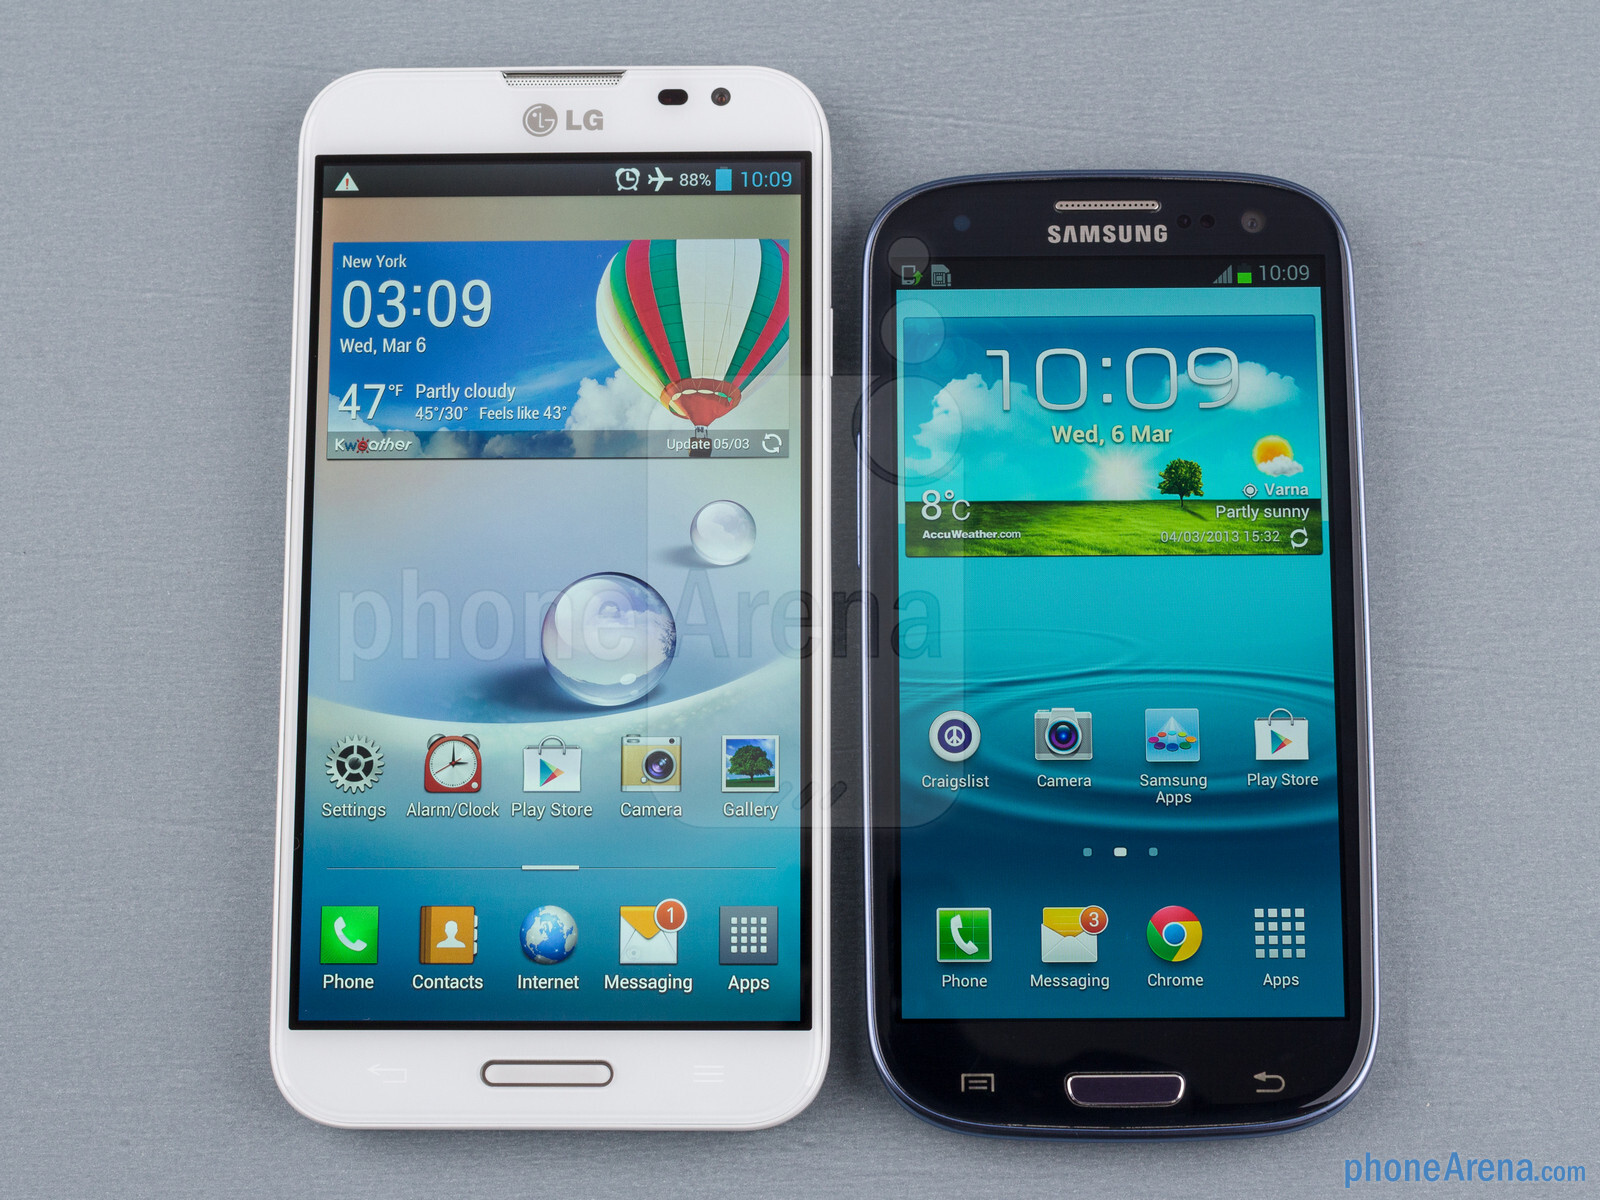 LG Optimus G Pro vs Samsung Galaxy S III